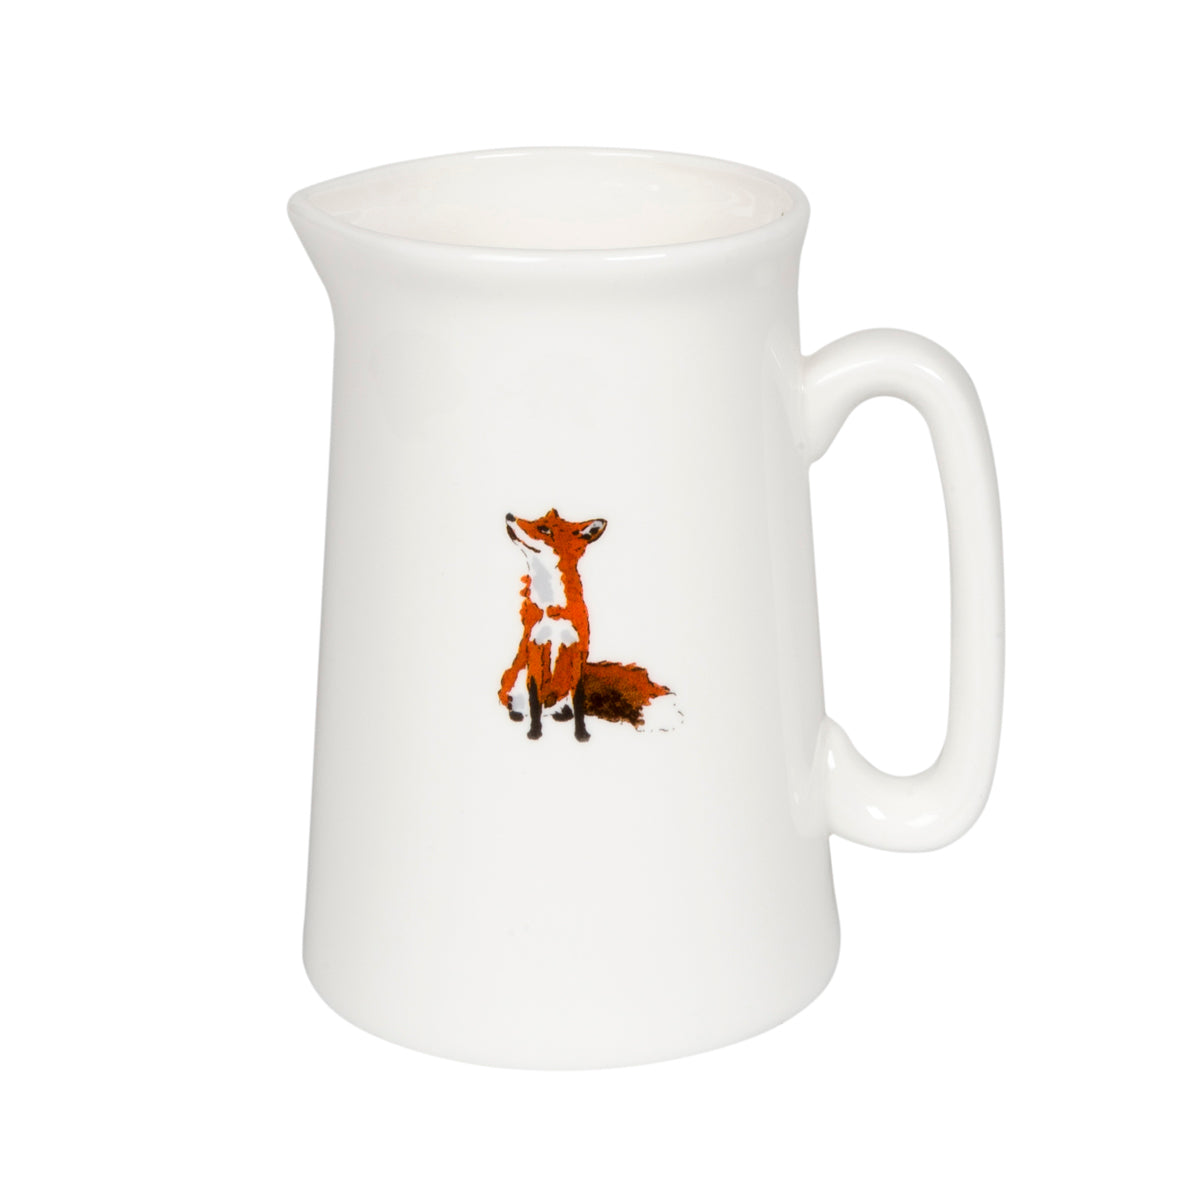 Jug - Small - Foxes